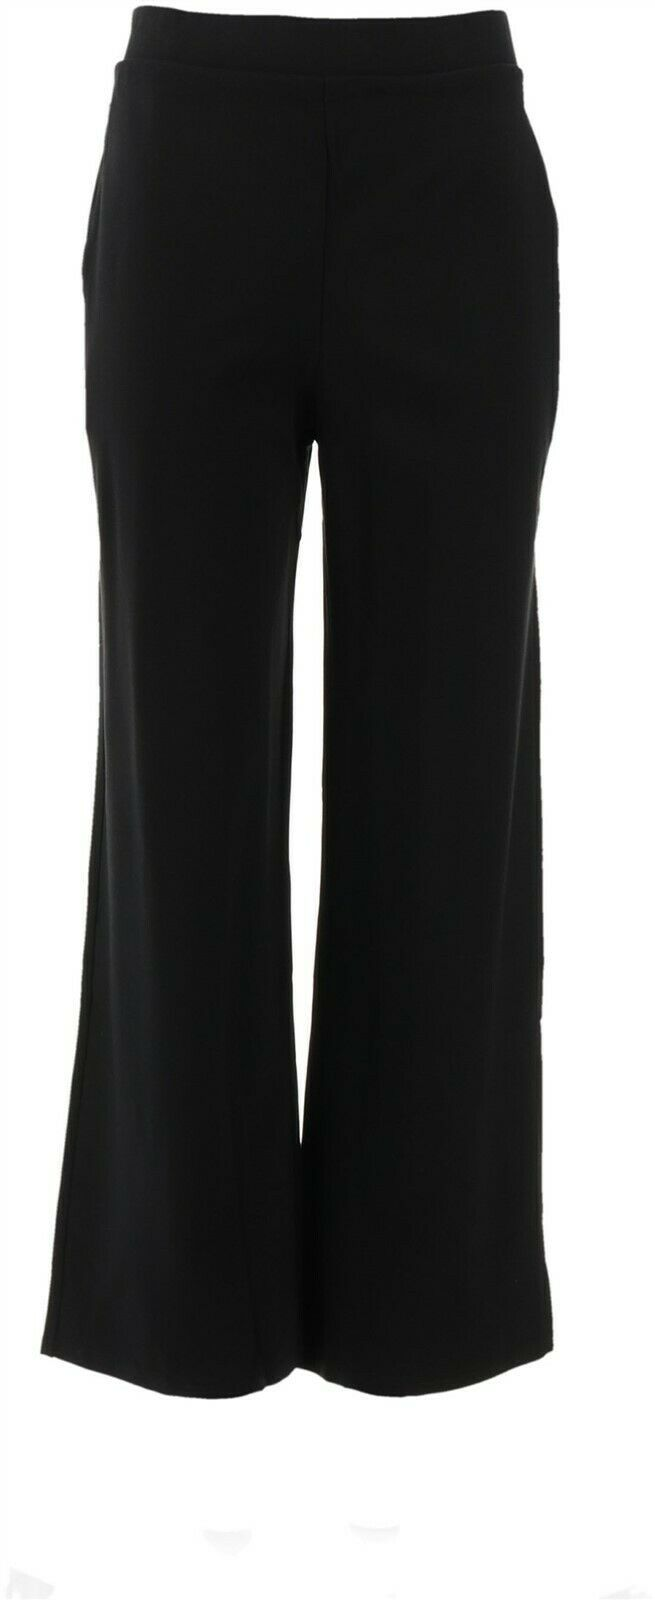 Primary image for BROOKE SHIELDS Timeless Ponte Wide-Leg Pants Black L NEW A346103